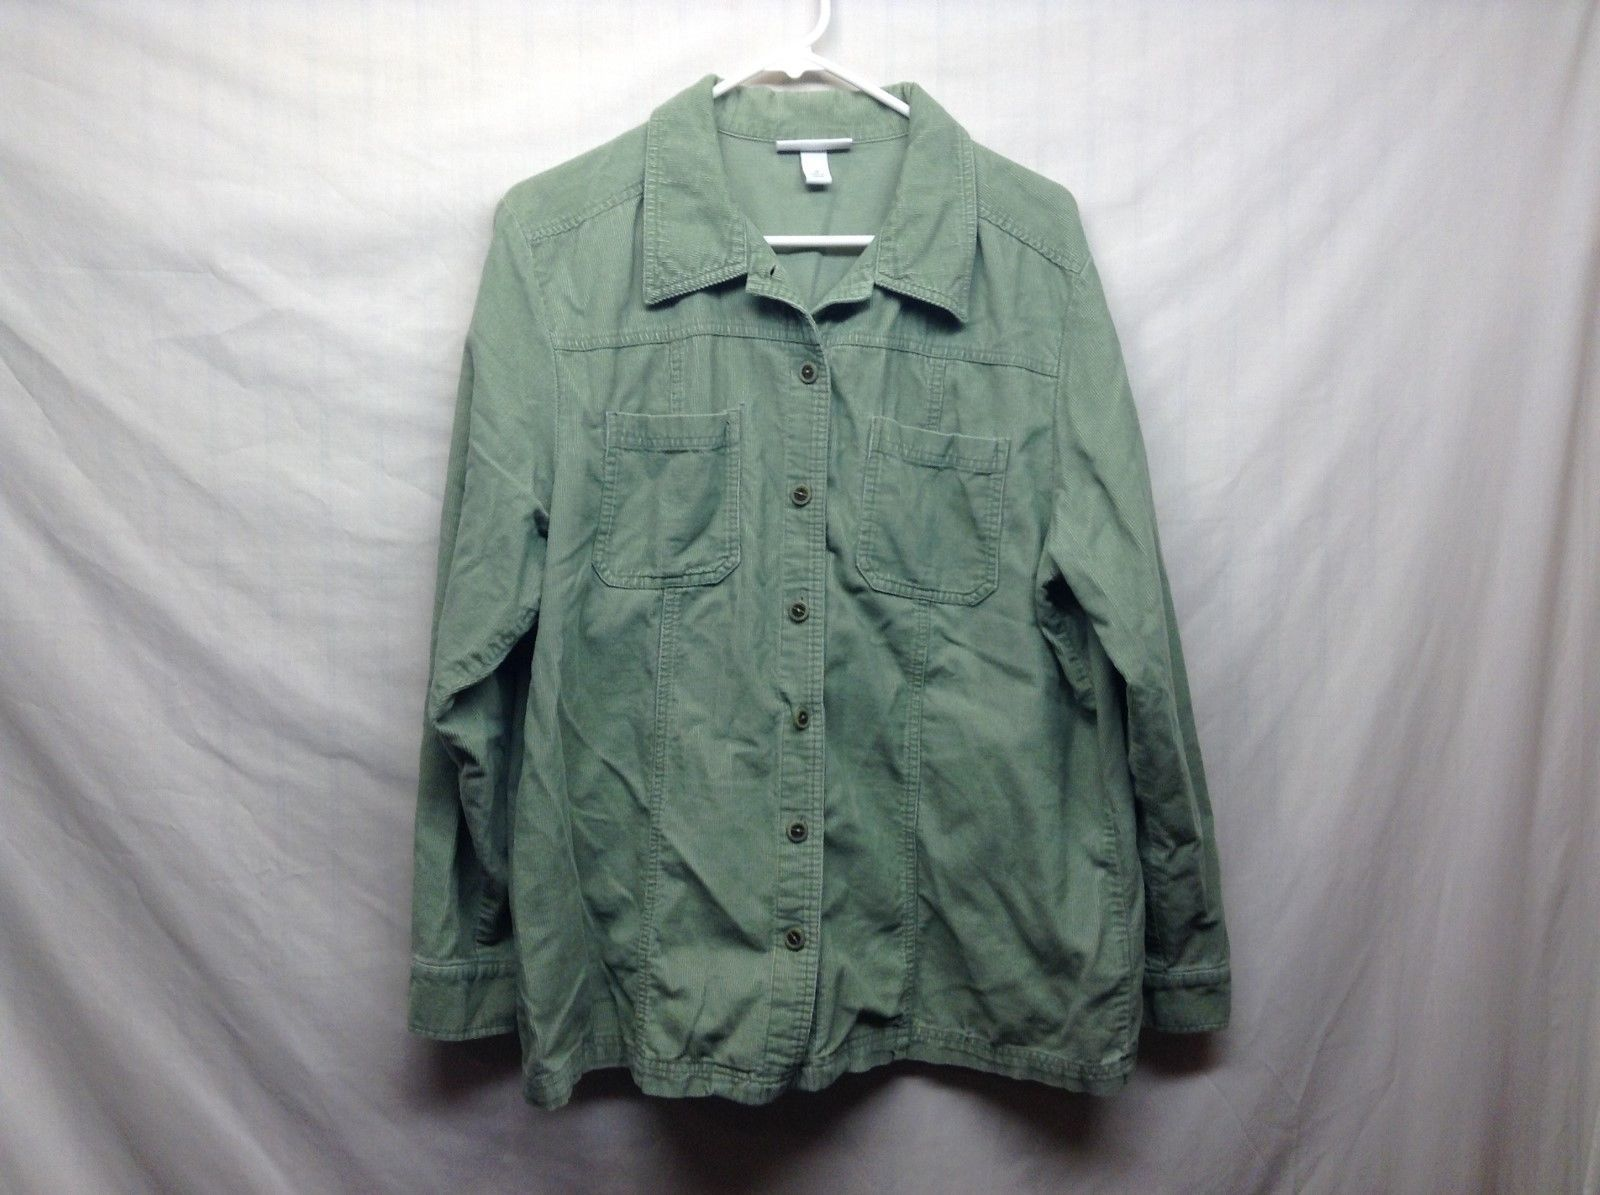 Dressbarn Light Green Corduroy Button Up Shirt Sz 1X